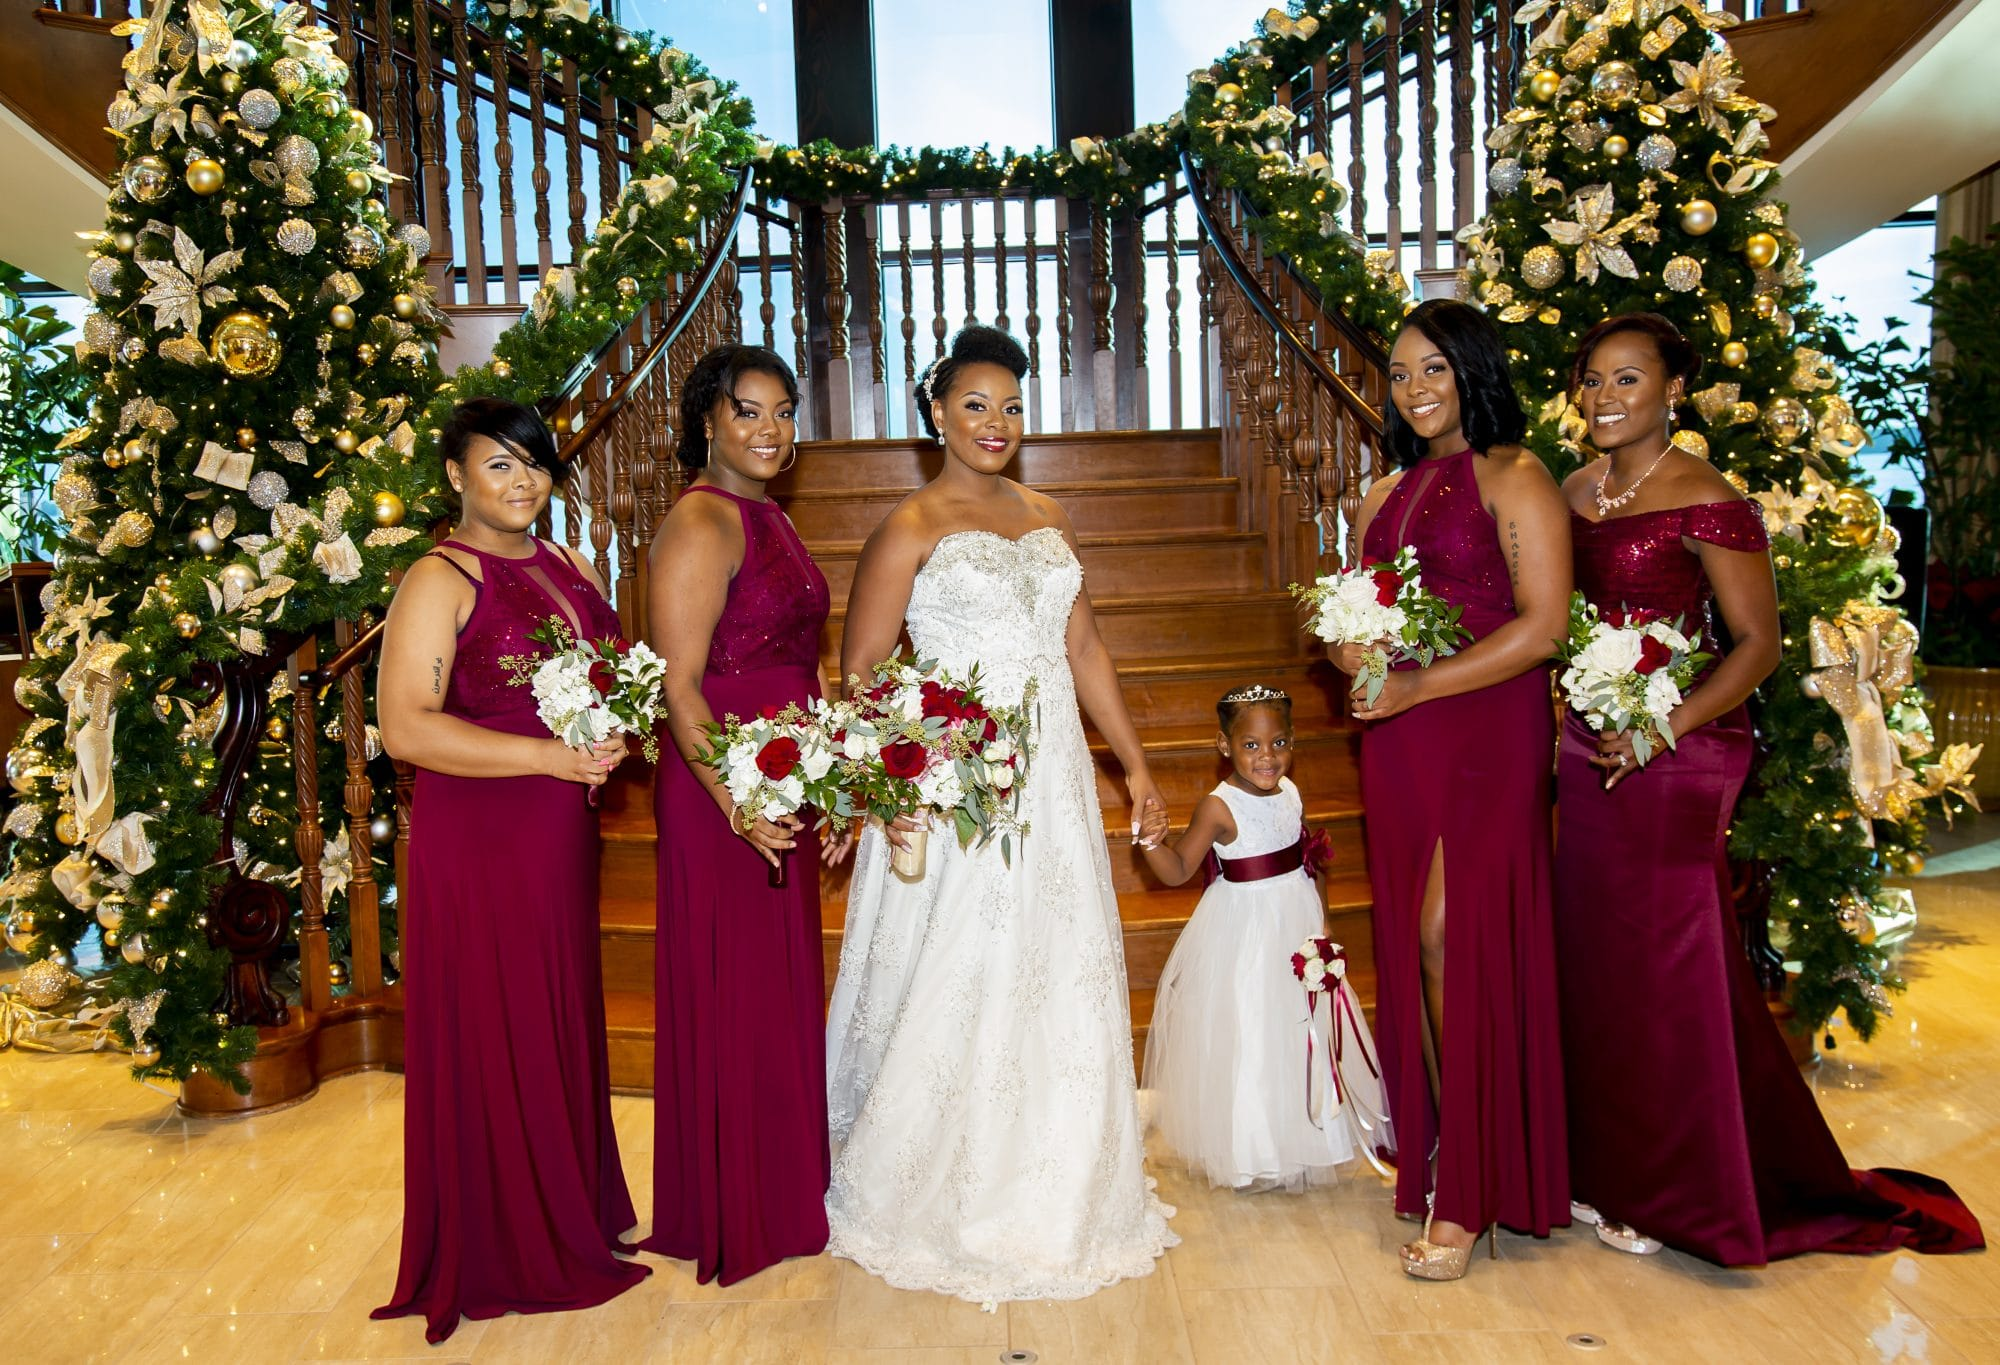 Shaneika with bridesmaids and flower girl in front of sweeping staircase